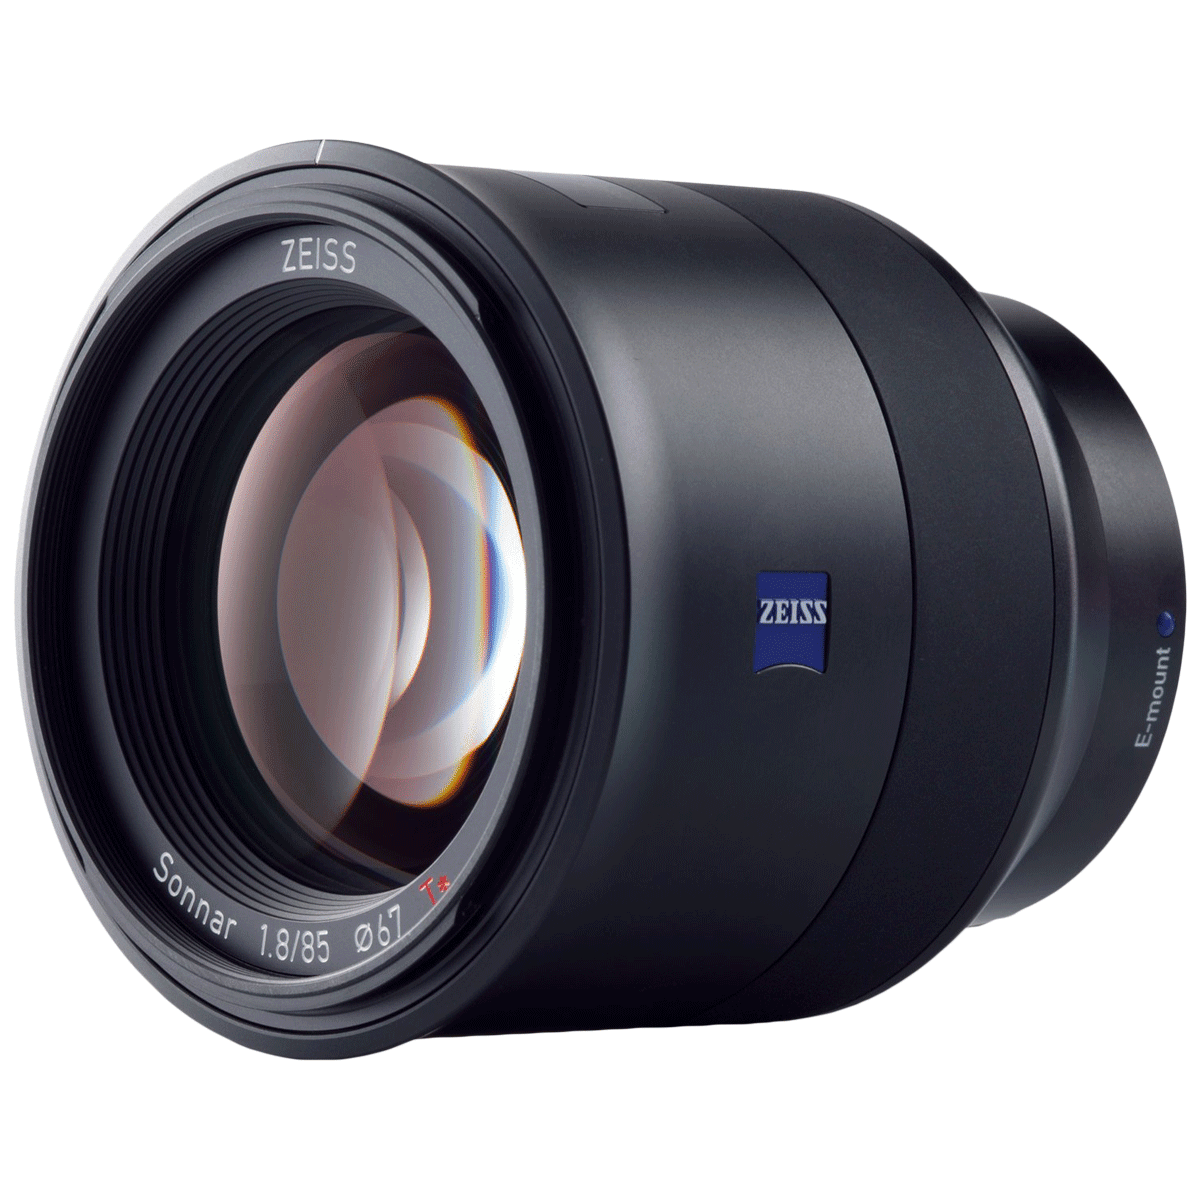 Carl Zeiss Batis 85 mm f/1.8 – f/22 Wide Angle Lens for Sony E-Mount Mirrorless and Full Frame Cameras (Weather and Dust Sealing, 000000-2103-751, Black)